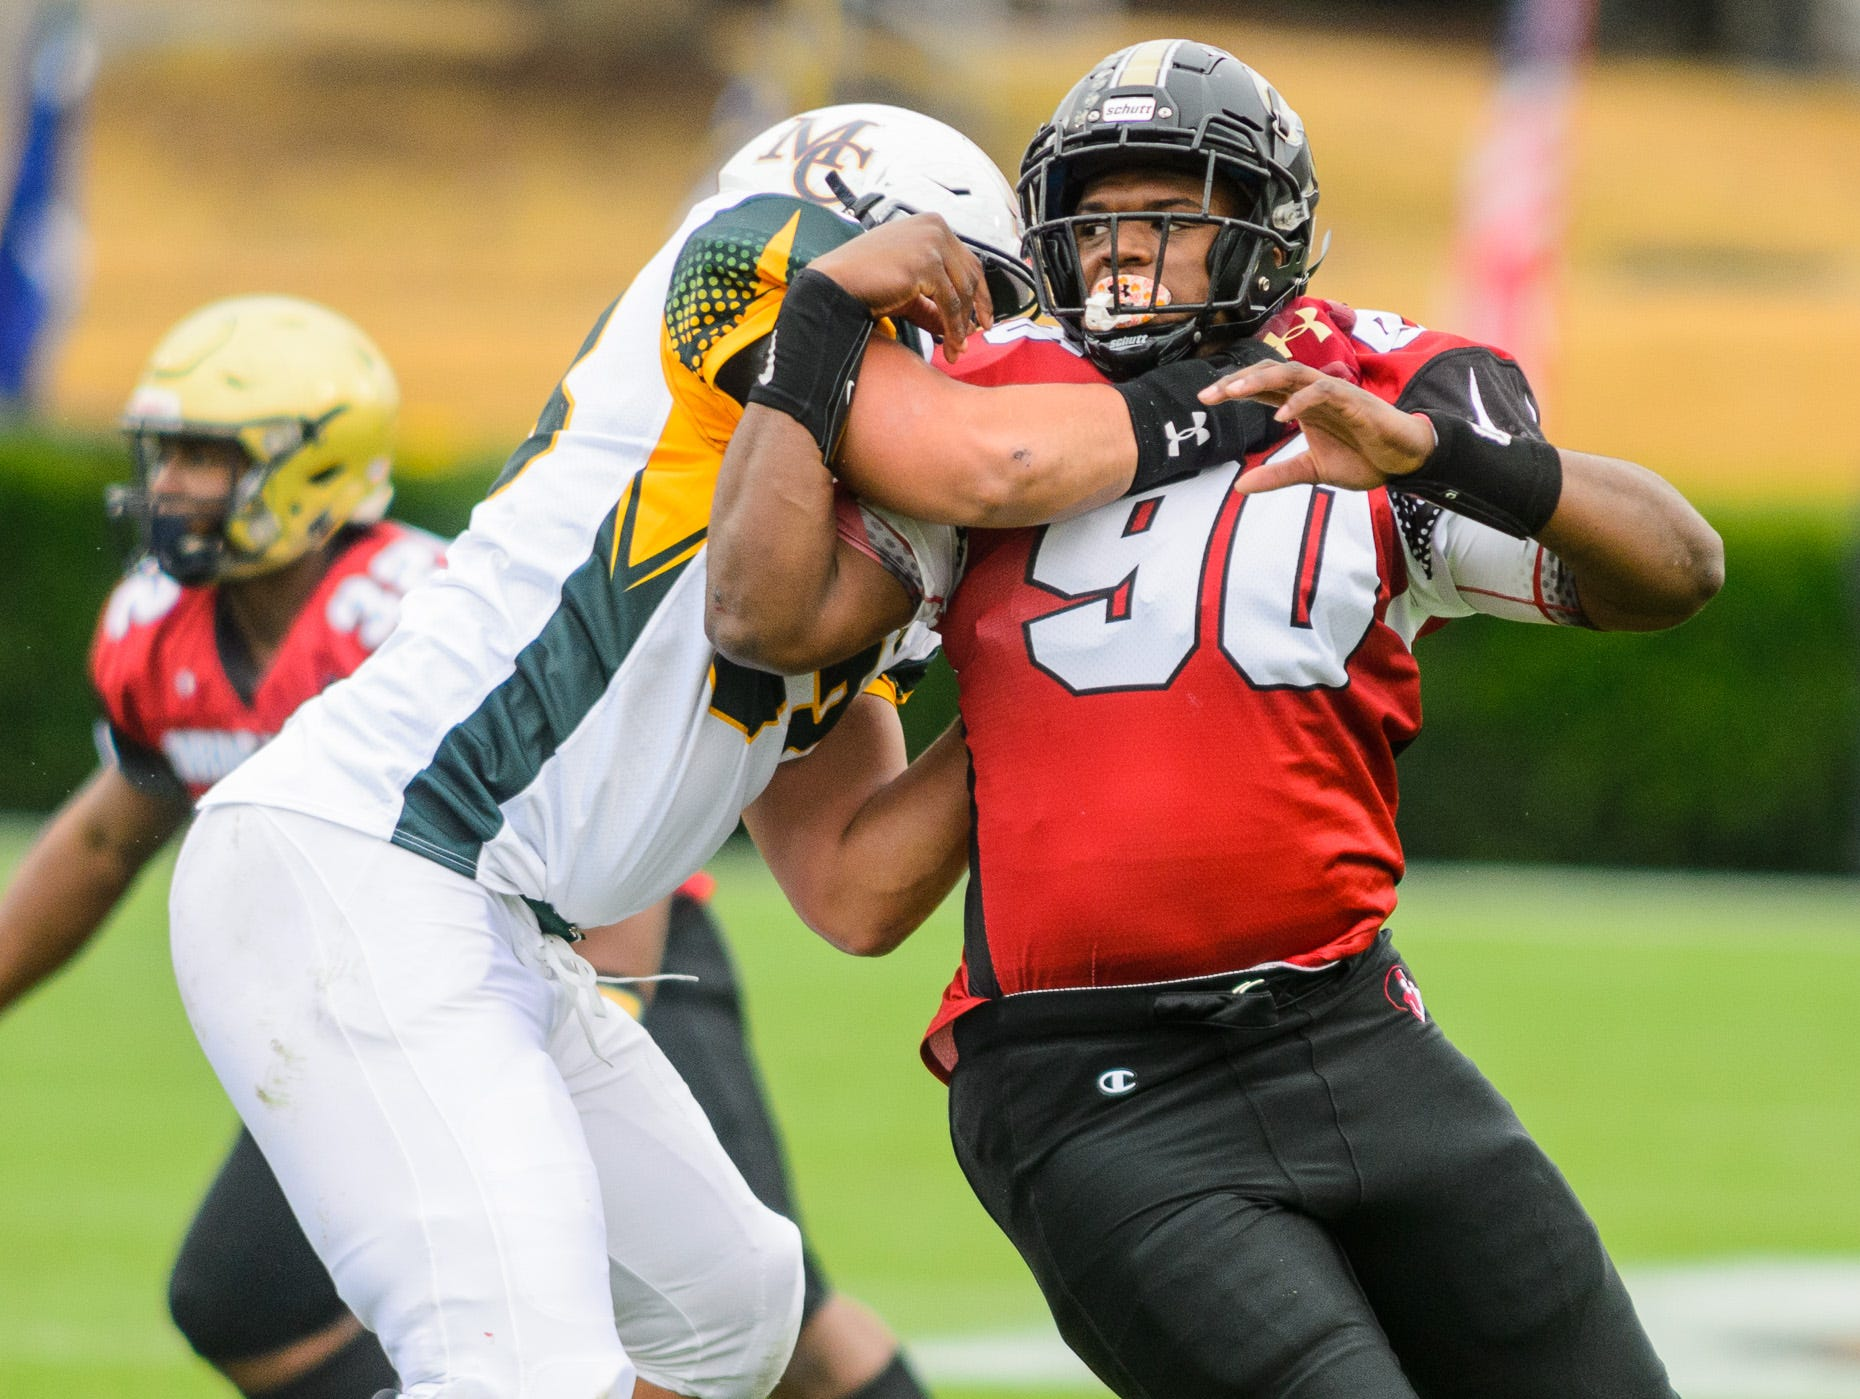 T.L. Hanna defensive lineman Zacch Pickens (90) tries to get around a blocker during the 82nd annual Shrine Bowl of the Carolinas on Saturday, December 15, 2018 at Wofford's Gibbs Stadium in Spartanburg, SC.